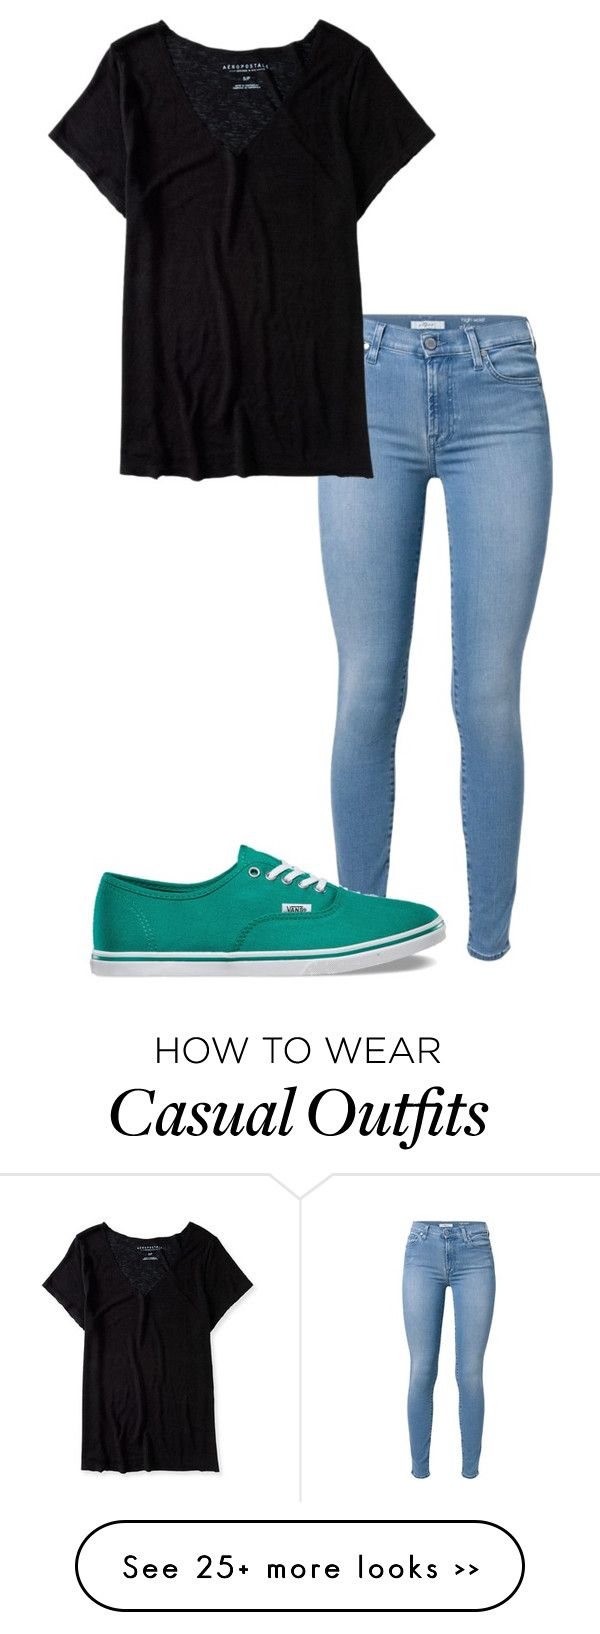 ||Casual day|| by ericavermillion on Polyvore featuring 7 For All Mankind, Aéropostale and Vans